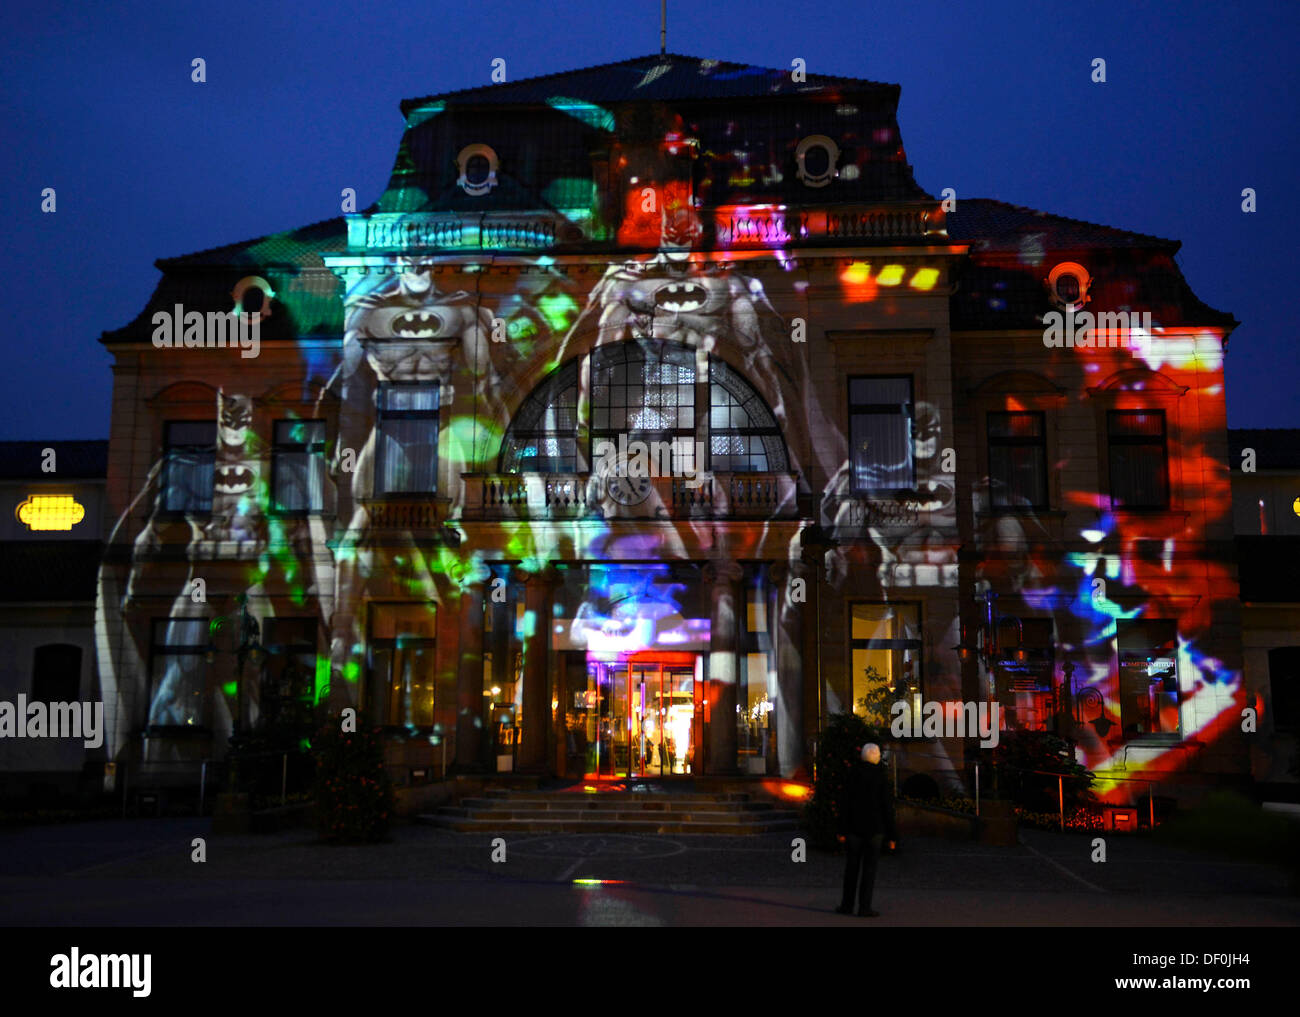 The Light Projection Pinball By Artist Kanjo Take Is On Display In Lichtsicht 4 Biennale Bad Rothenfelde Germany 25 September 2013